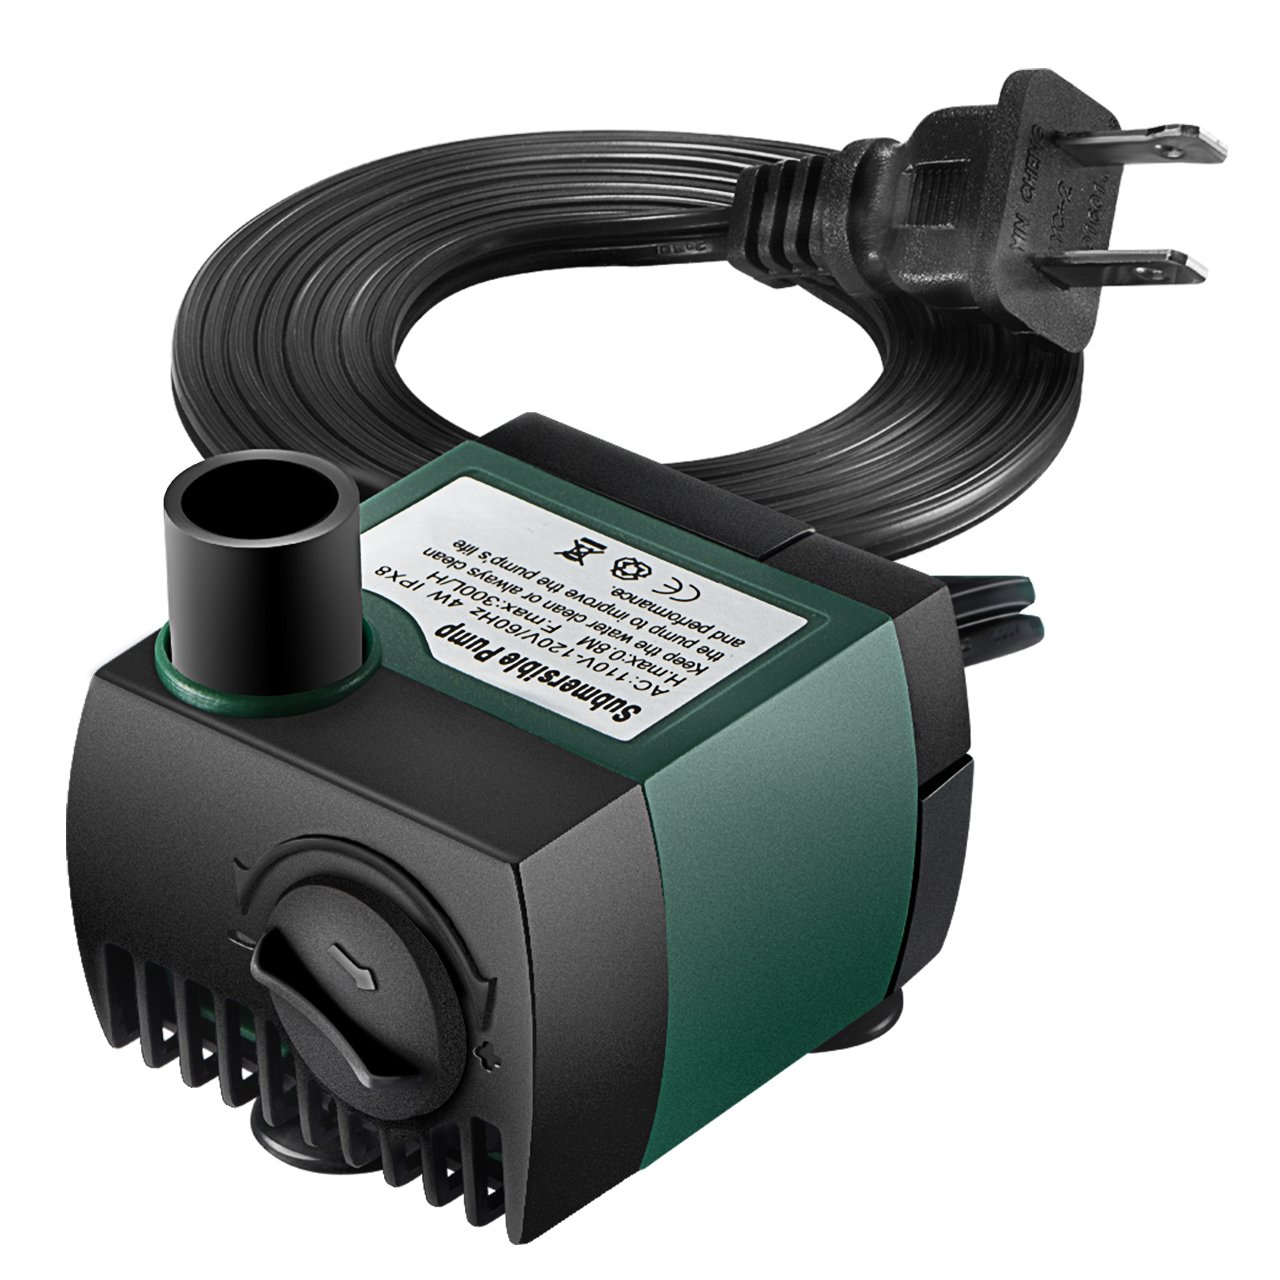 VicTsing 79.25GPH(300L/H) Submersible Water Pump Withstands 48hrs Dry Burning, Detachable , Cleanable Water Pump with 5.6Ft (1.7M) Power Cord for Aquarium, Pond, Fish Tank, Statuary Water Pump Hydroponics, No Noise USAA4-VTGEGD046ABUS-VD